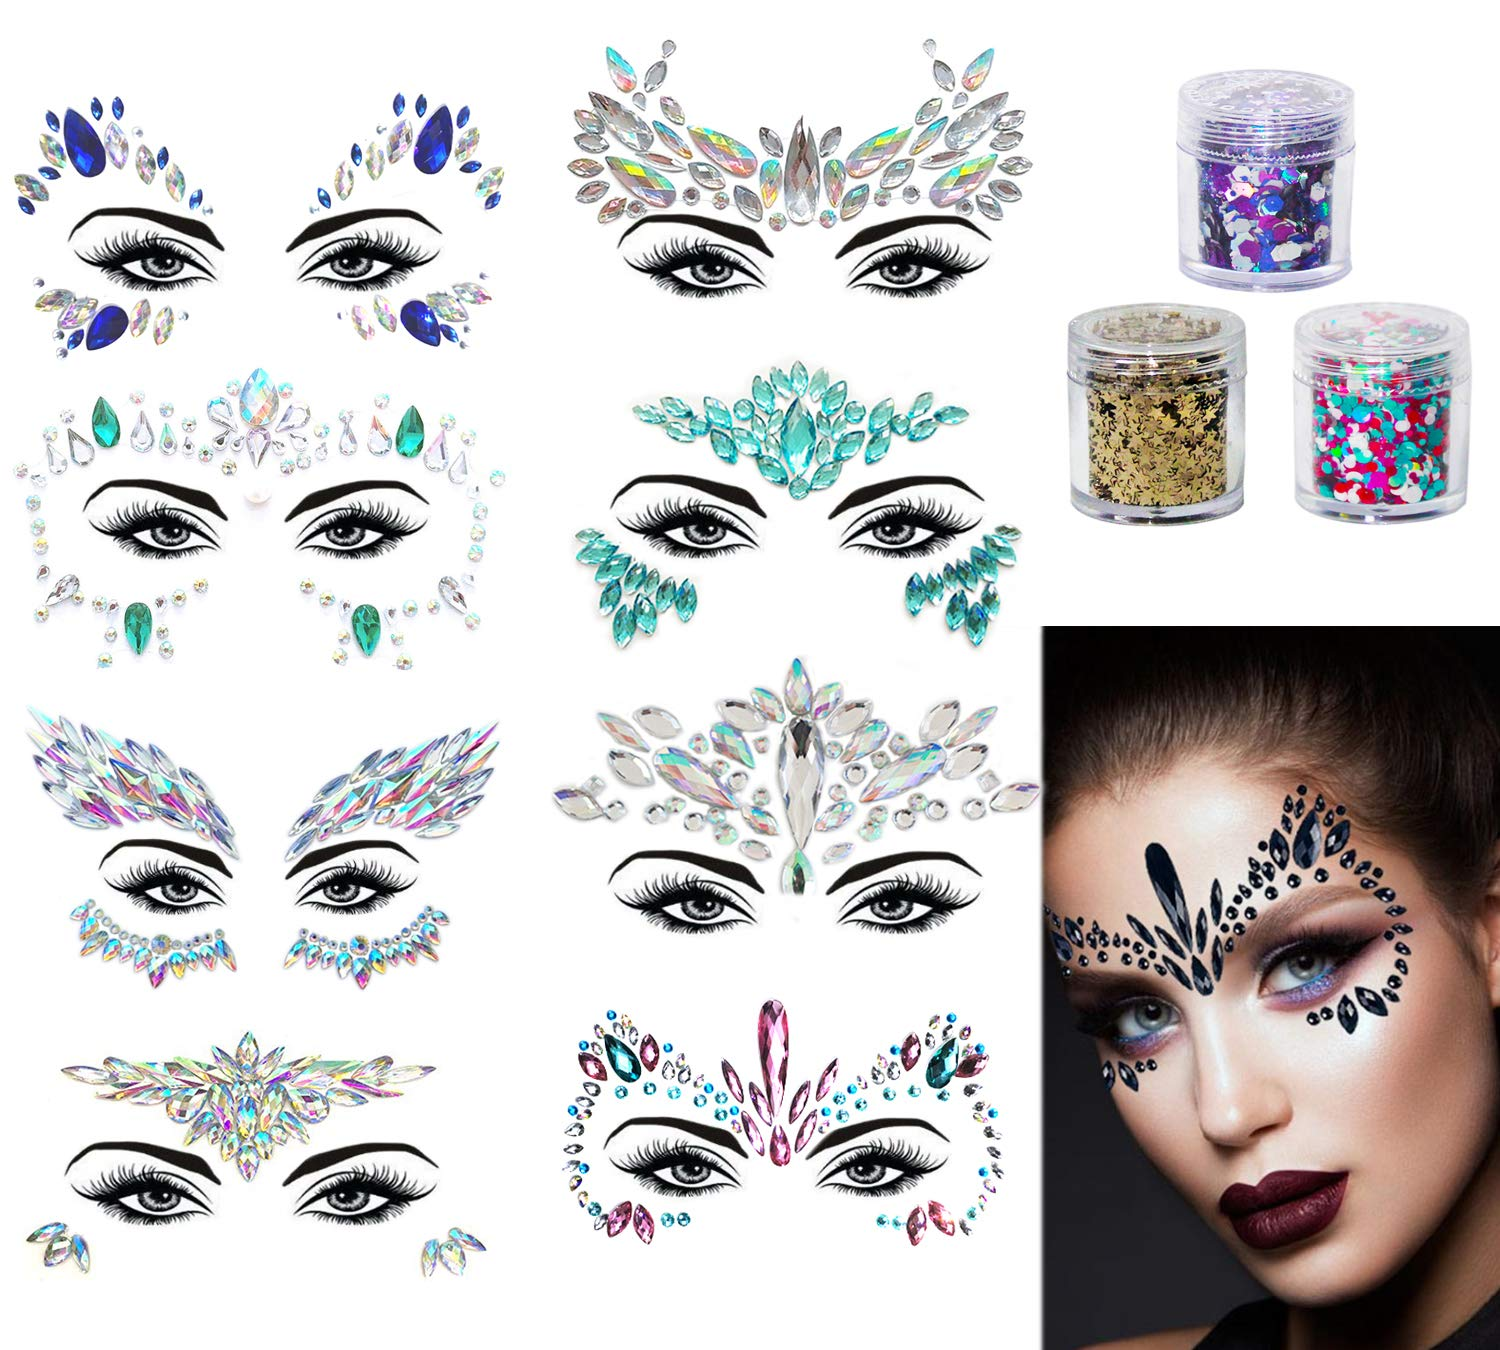 uBook Face Gems 8 Pack Face Jewellery Face Jewels Face Gems For Festivals With 3 Face Glitter